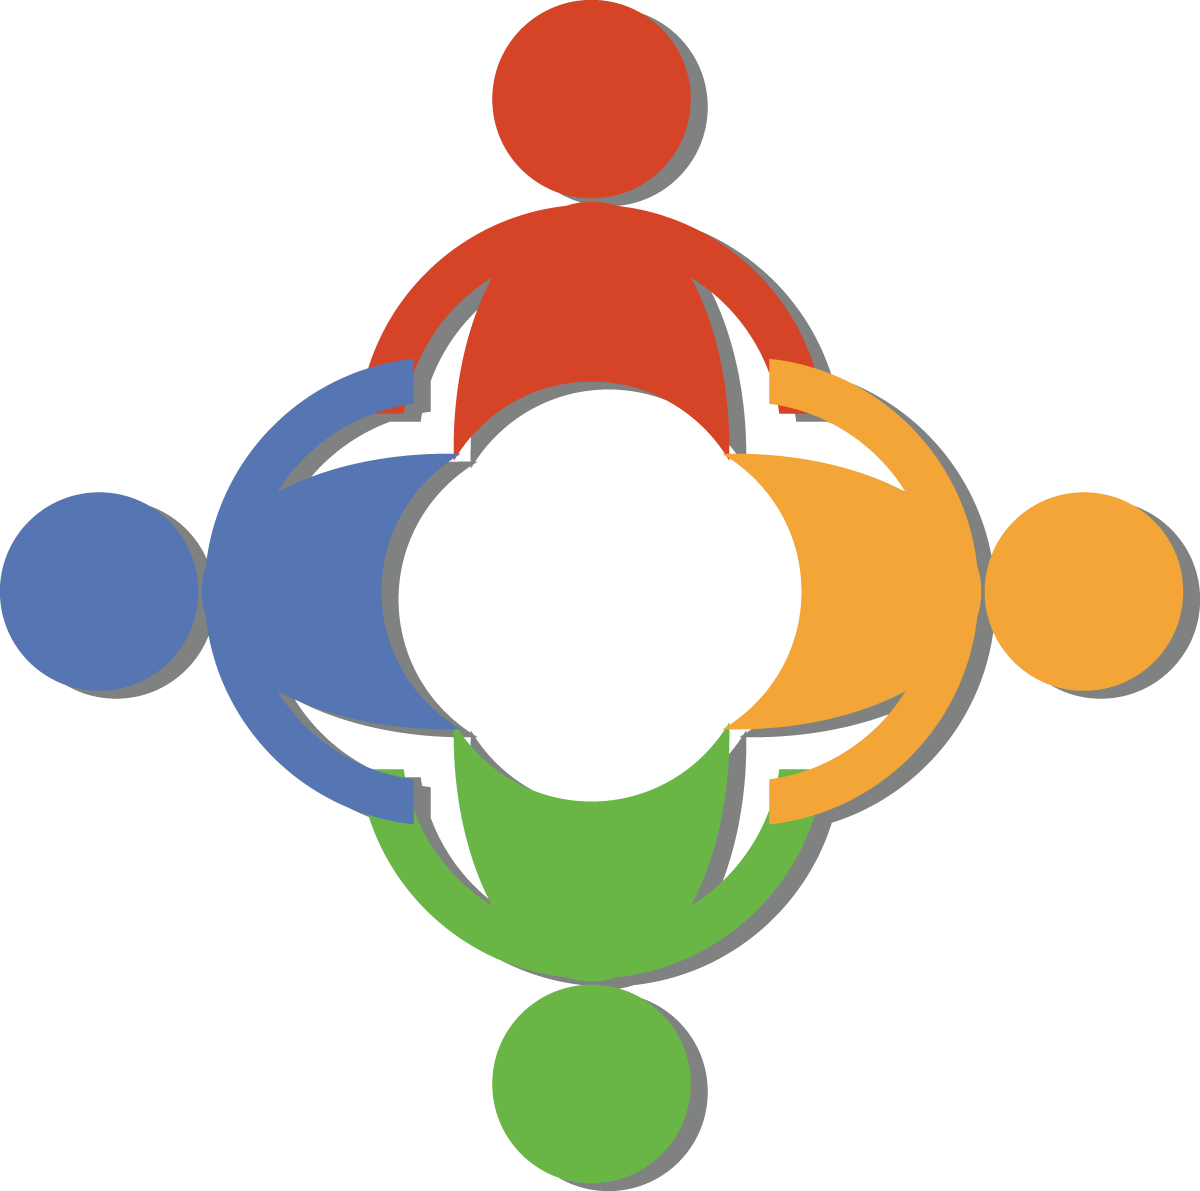 Free Teamwork Clip Art Of A Circle Of Diverse People Holding Hands by ...